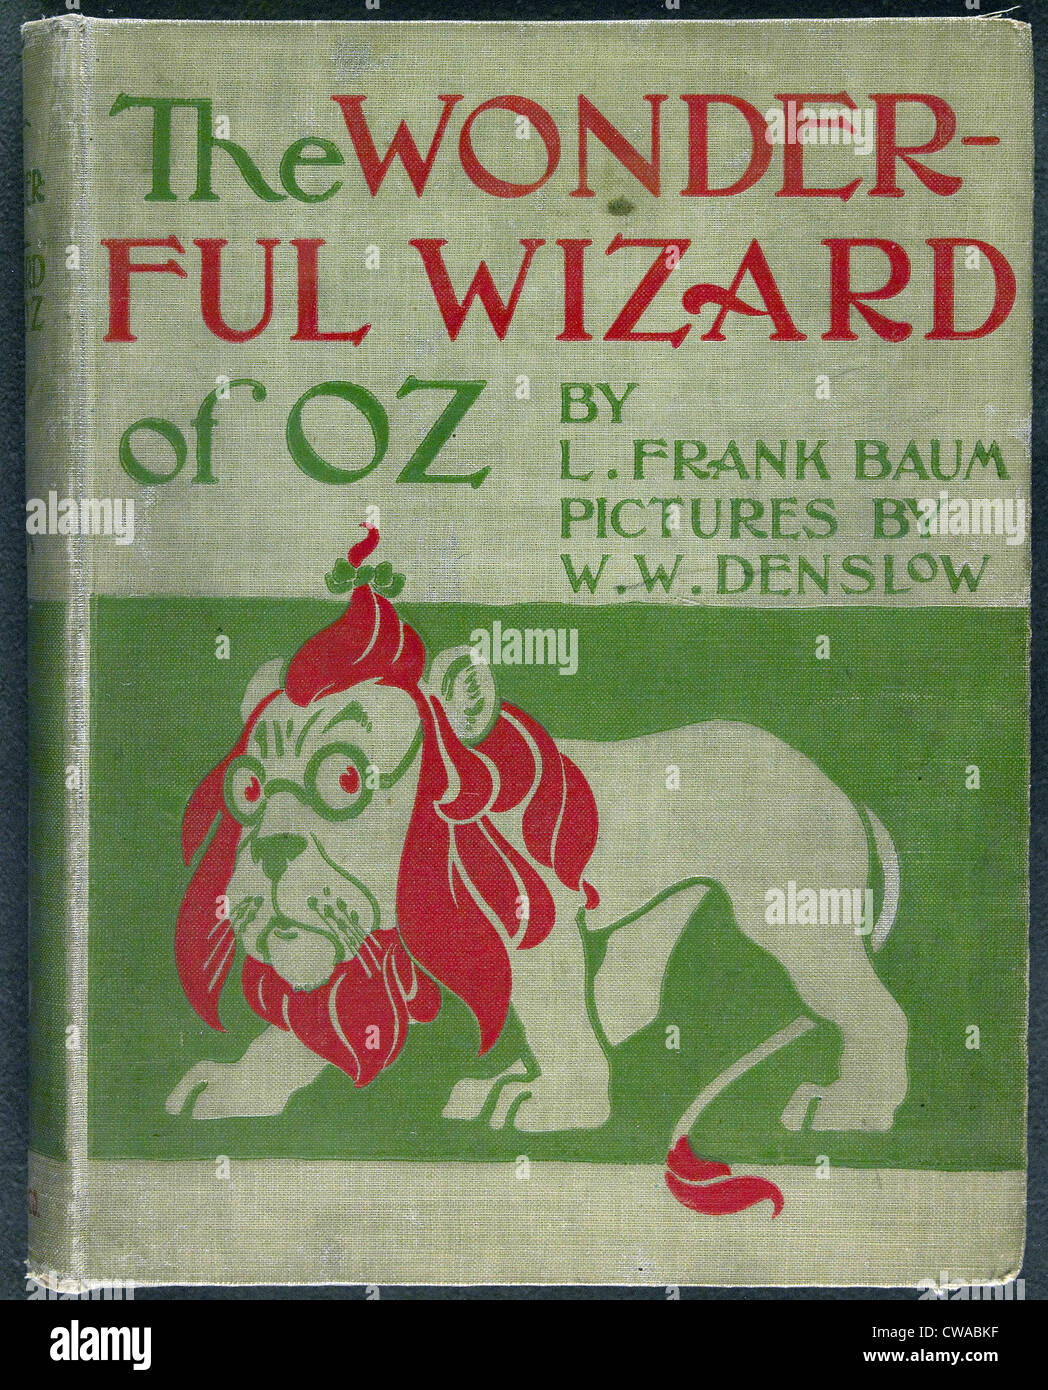 1900111102, the wonderful wizard of oz, frank baum, ww denslow.